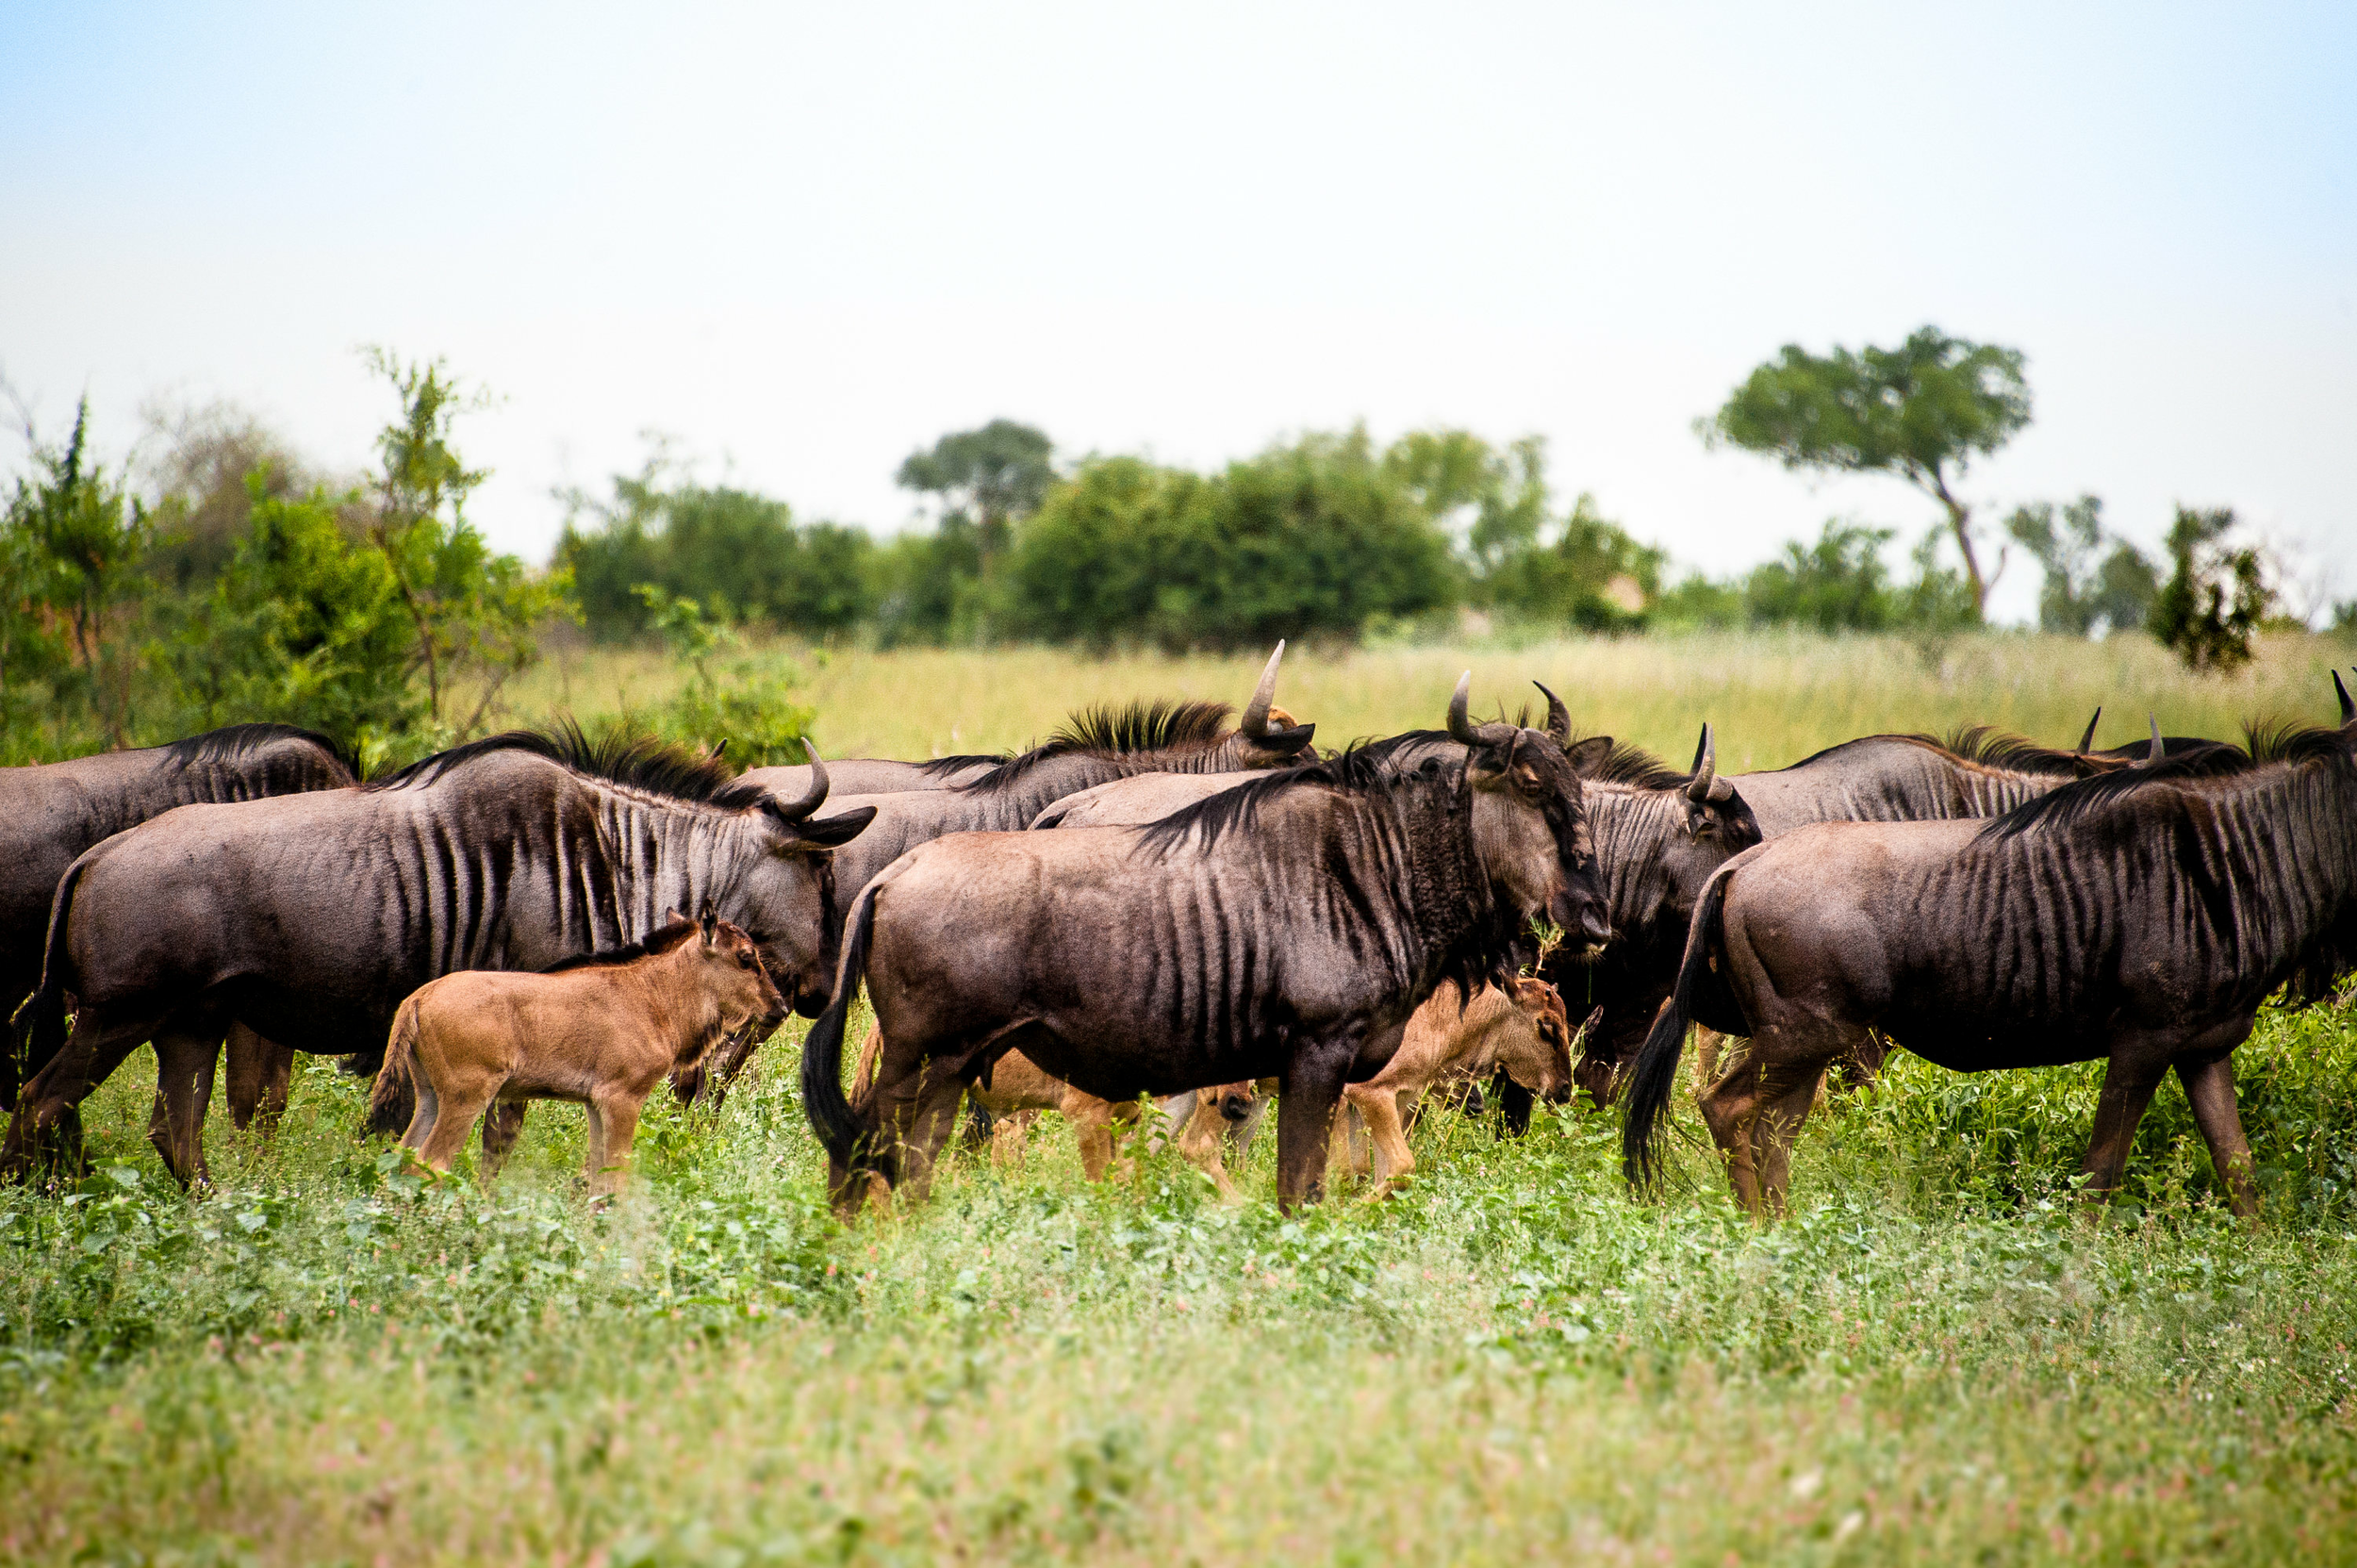 """Wildebeest Grazing"" Photographed by Ron Foster in South Africa"